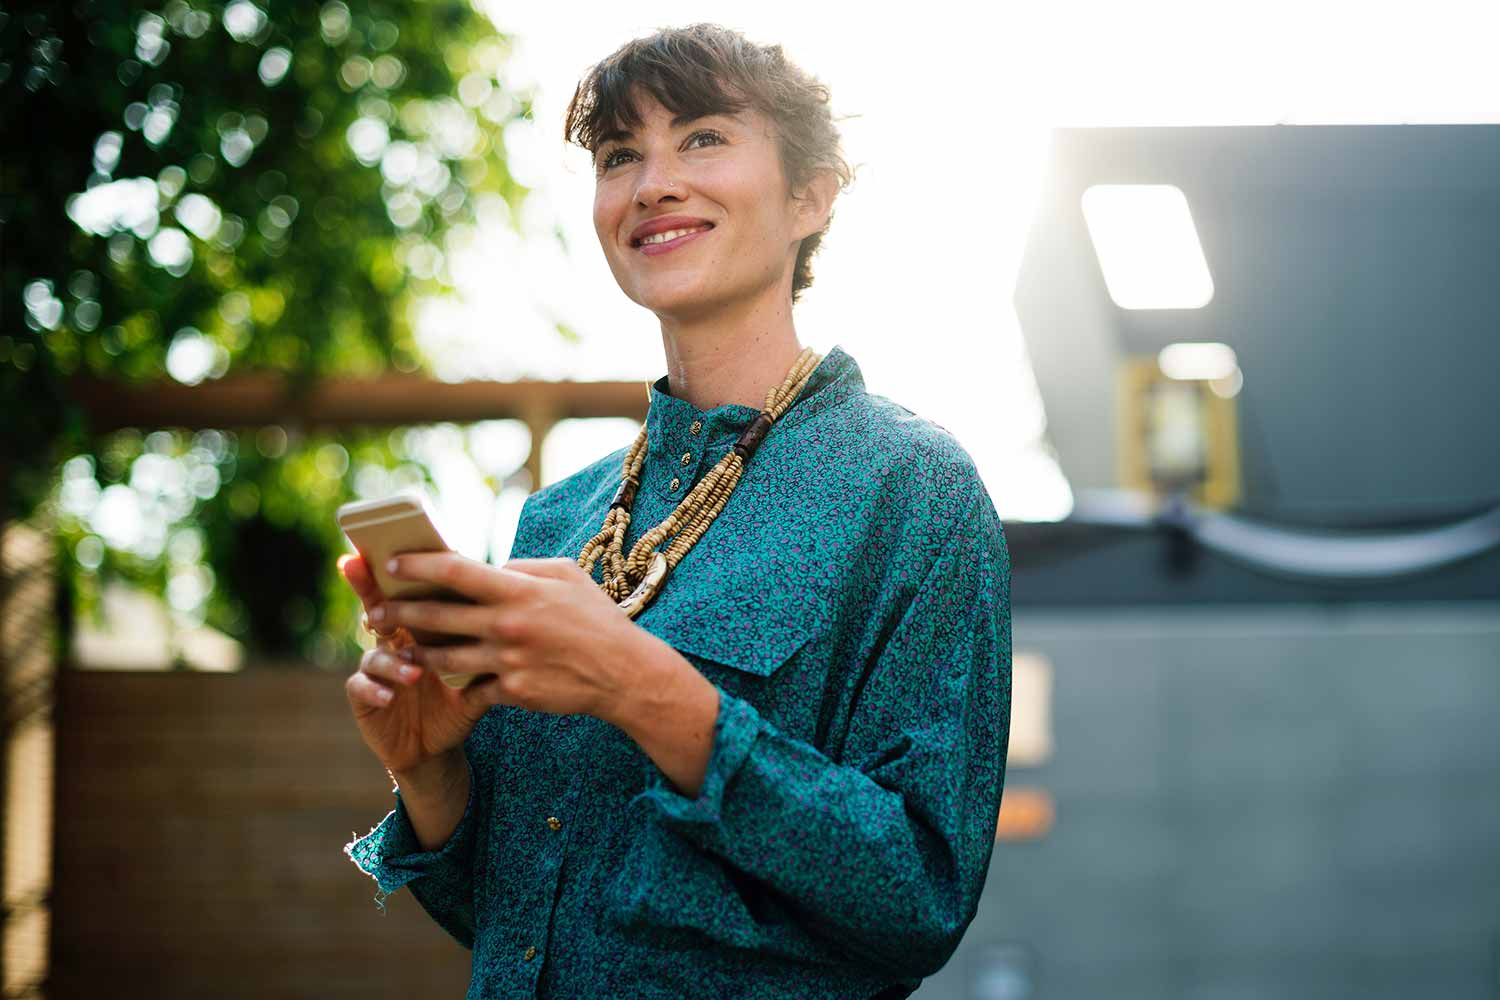 woman-smiling-on-phone